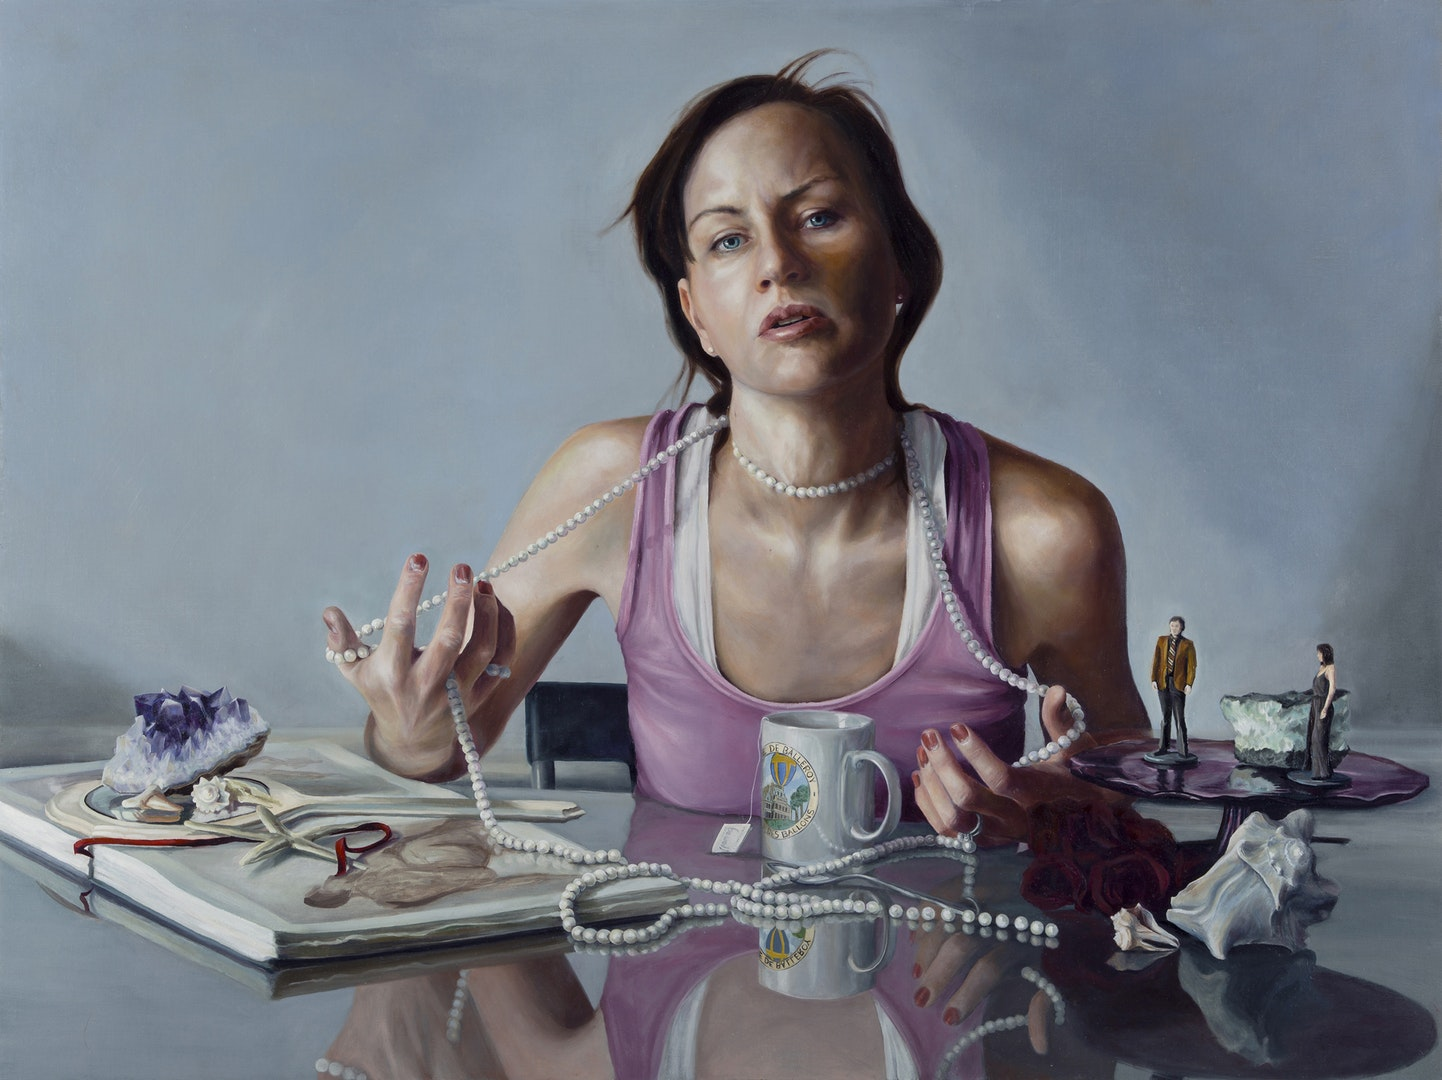 'Be Well; Engaging the Noose', Nancy Hollinghurst, Oil on linen panel, 76.2 x 101.6 cm